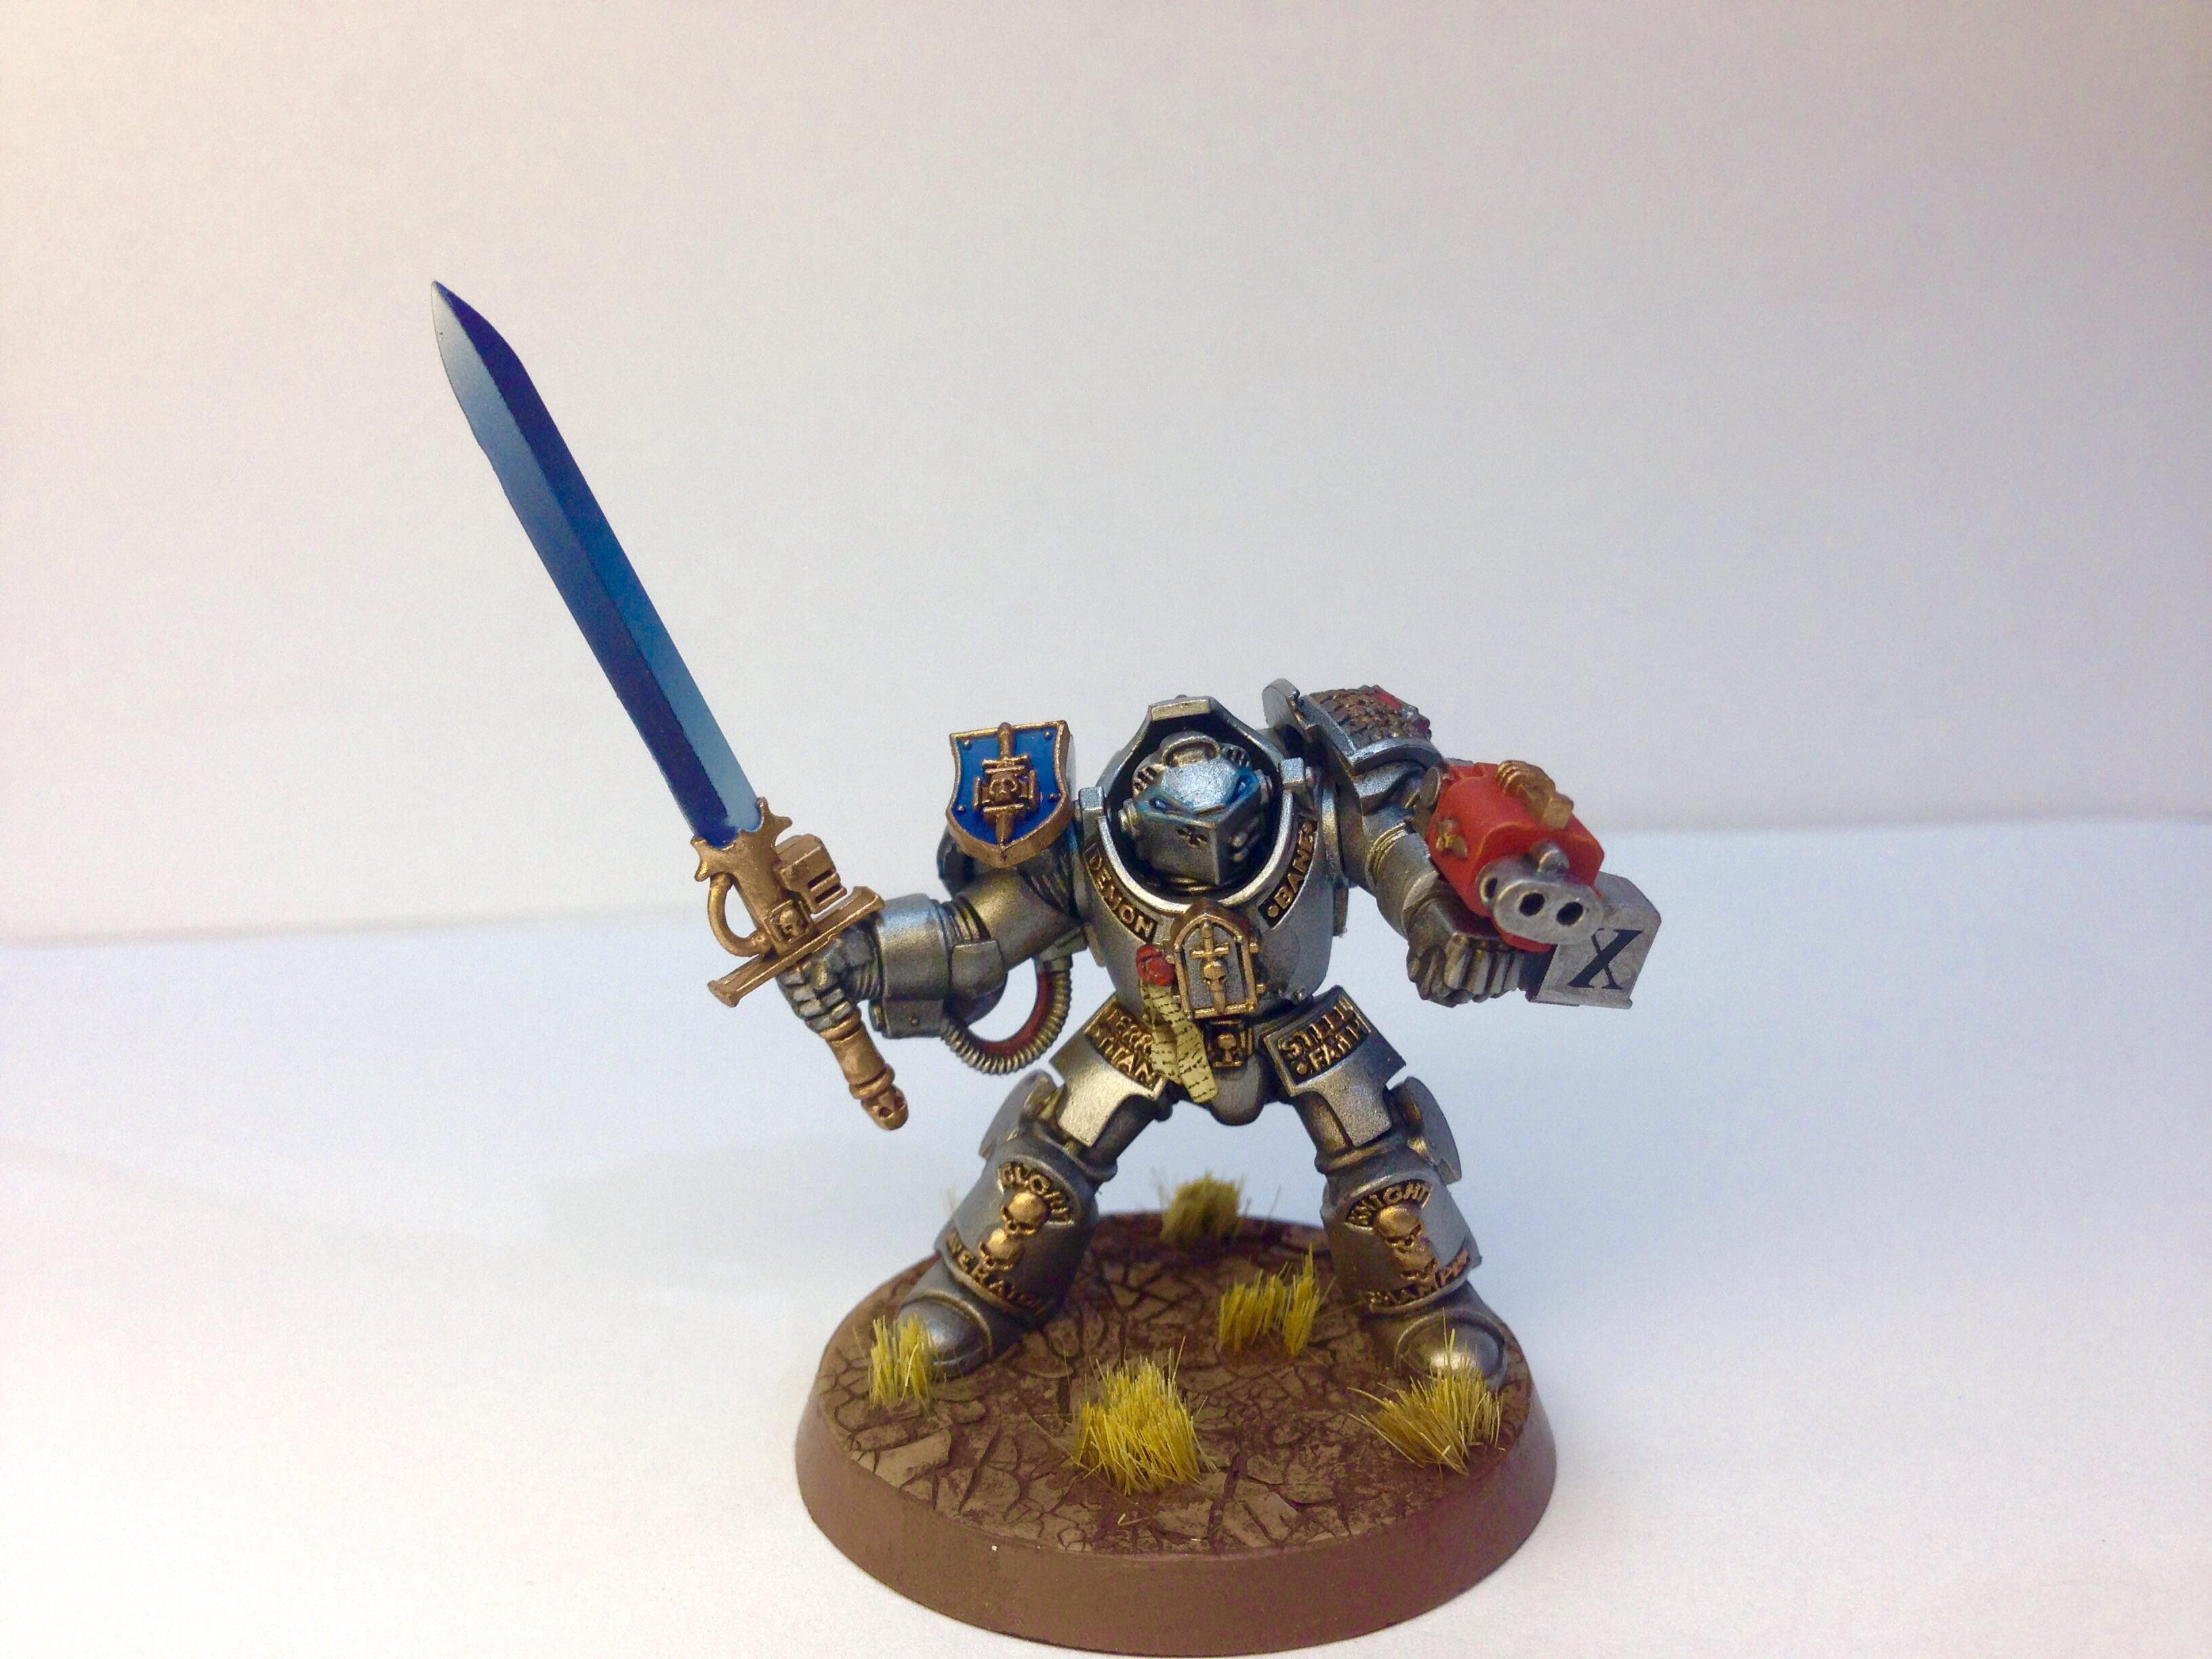 Adeptus Astartes, Force Weapon, Grass, Grey Knights, Horus Heresy, Inquisition, Non-Metallic Metal, Ordo Mallaeus, Power Armor, Space Marines, Terminator Armor, The Empire, Titan, Warhammer 40,000, Warhammer Fantasy